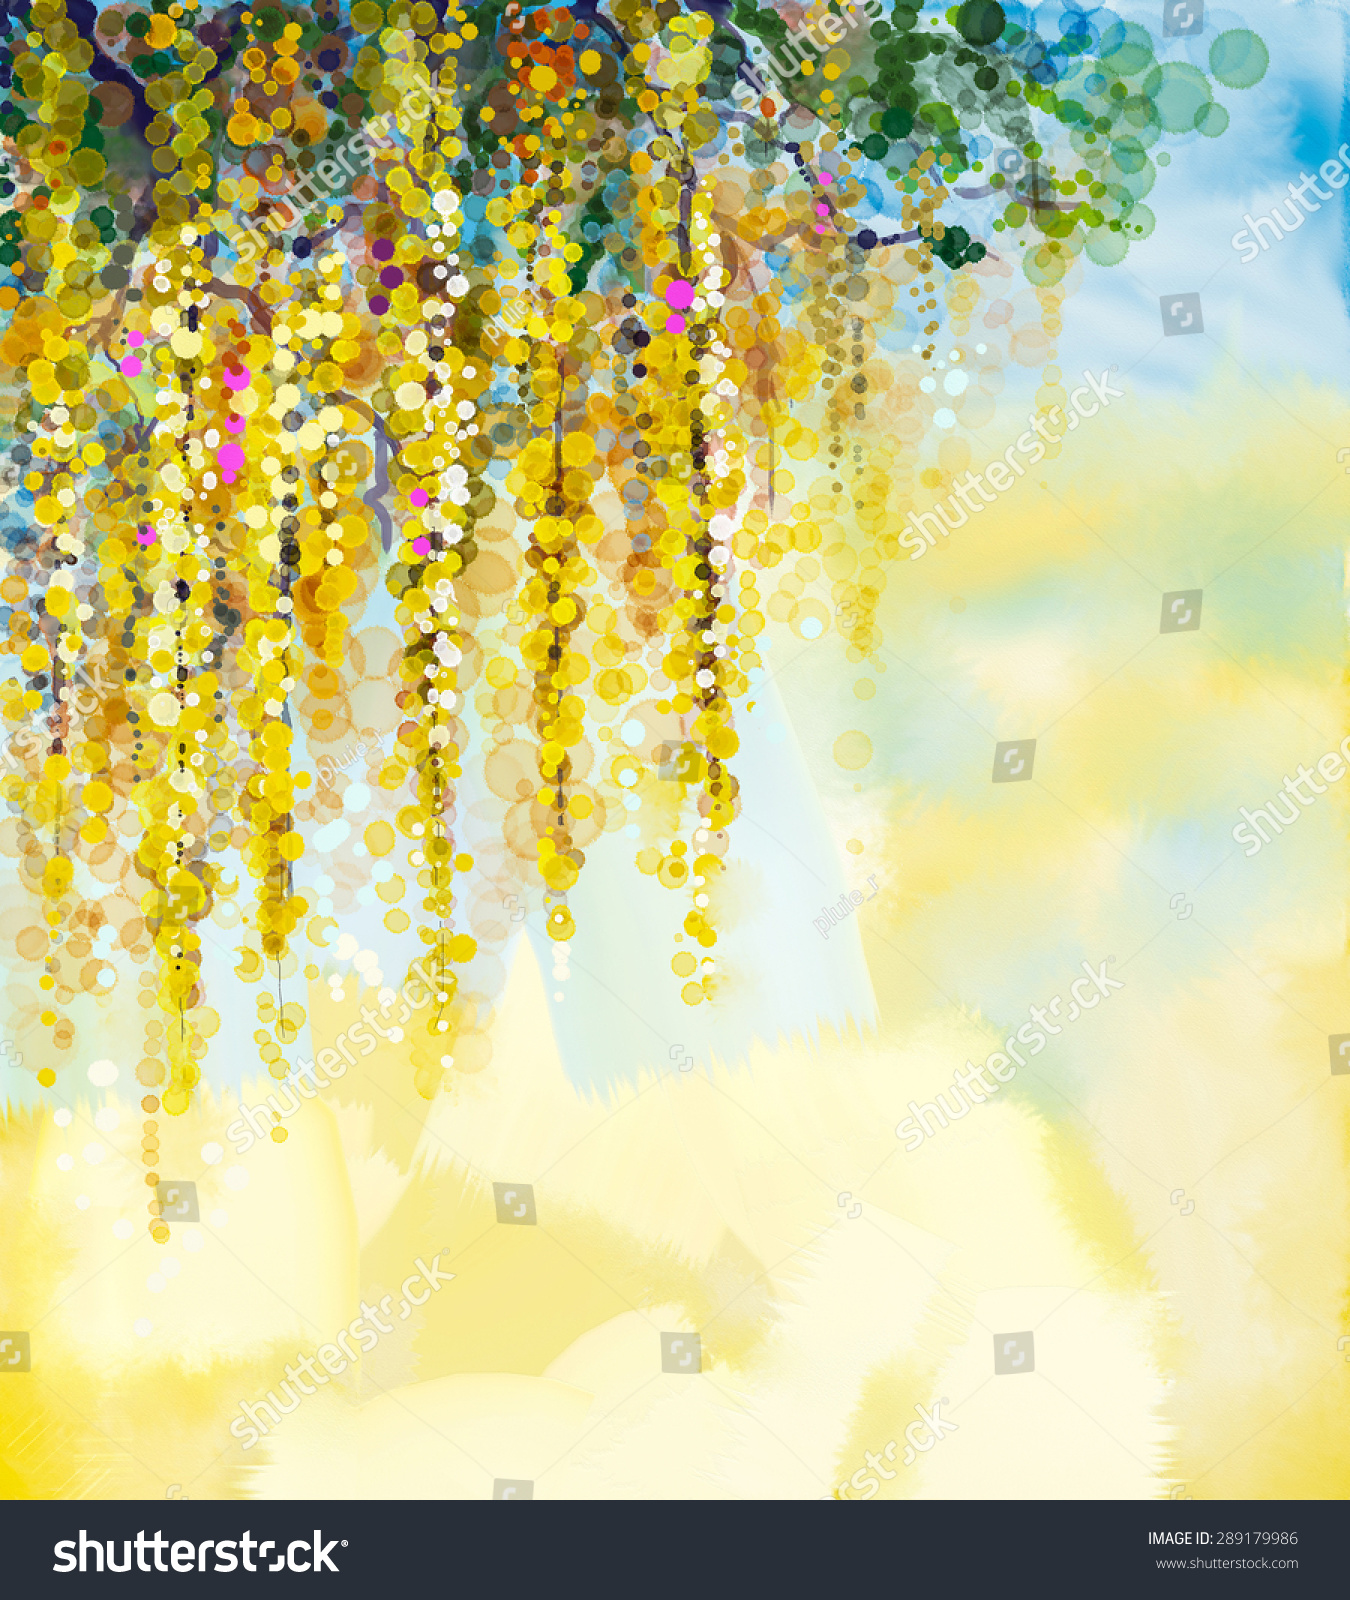 Royalty Free Abstract Flowers Watercolor Painting 289179986 Stock